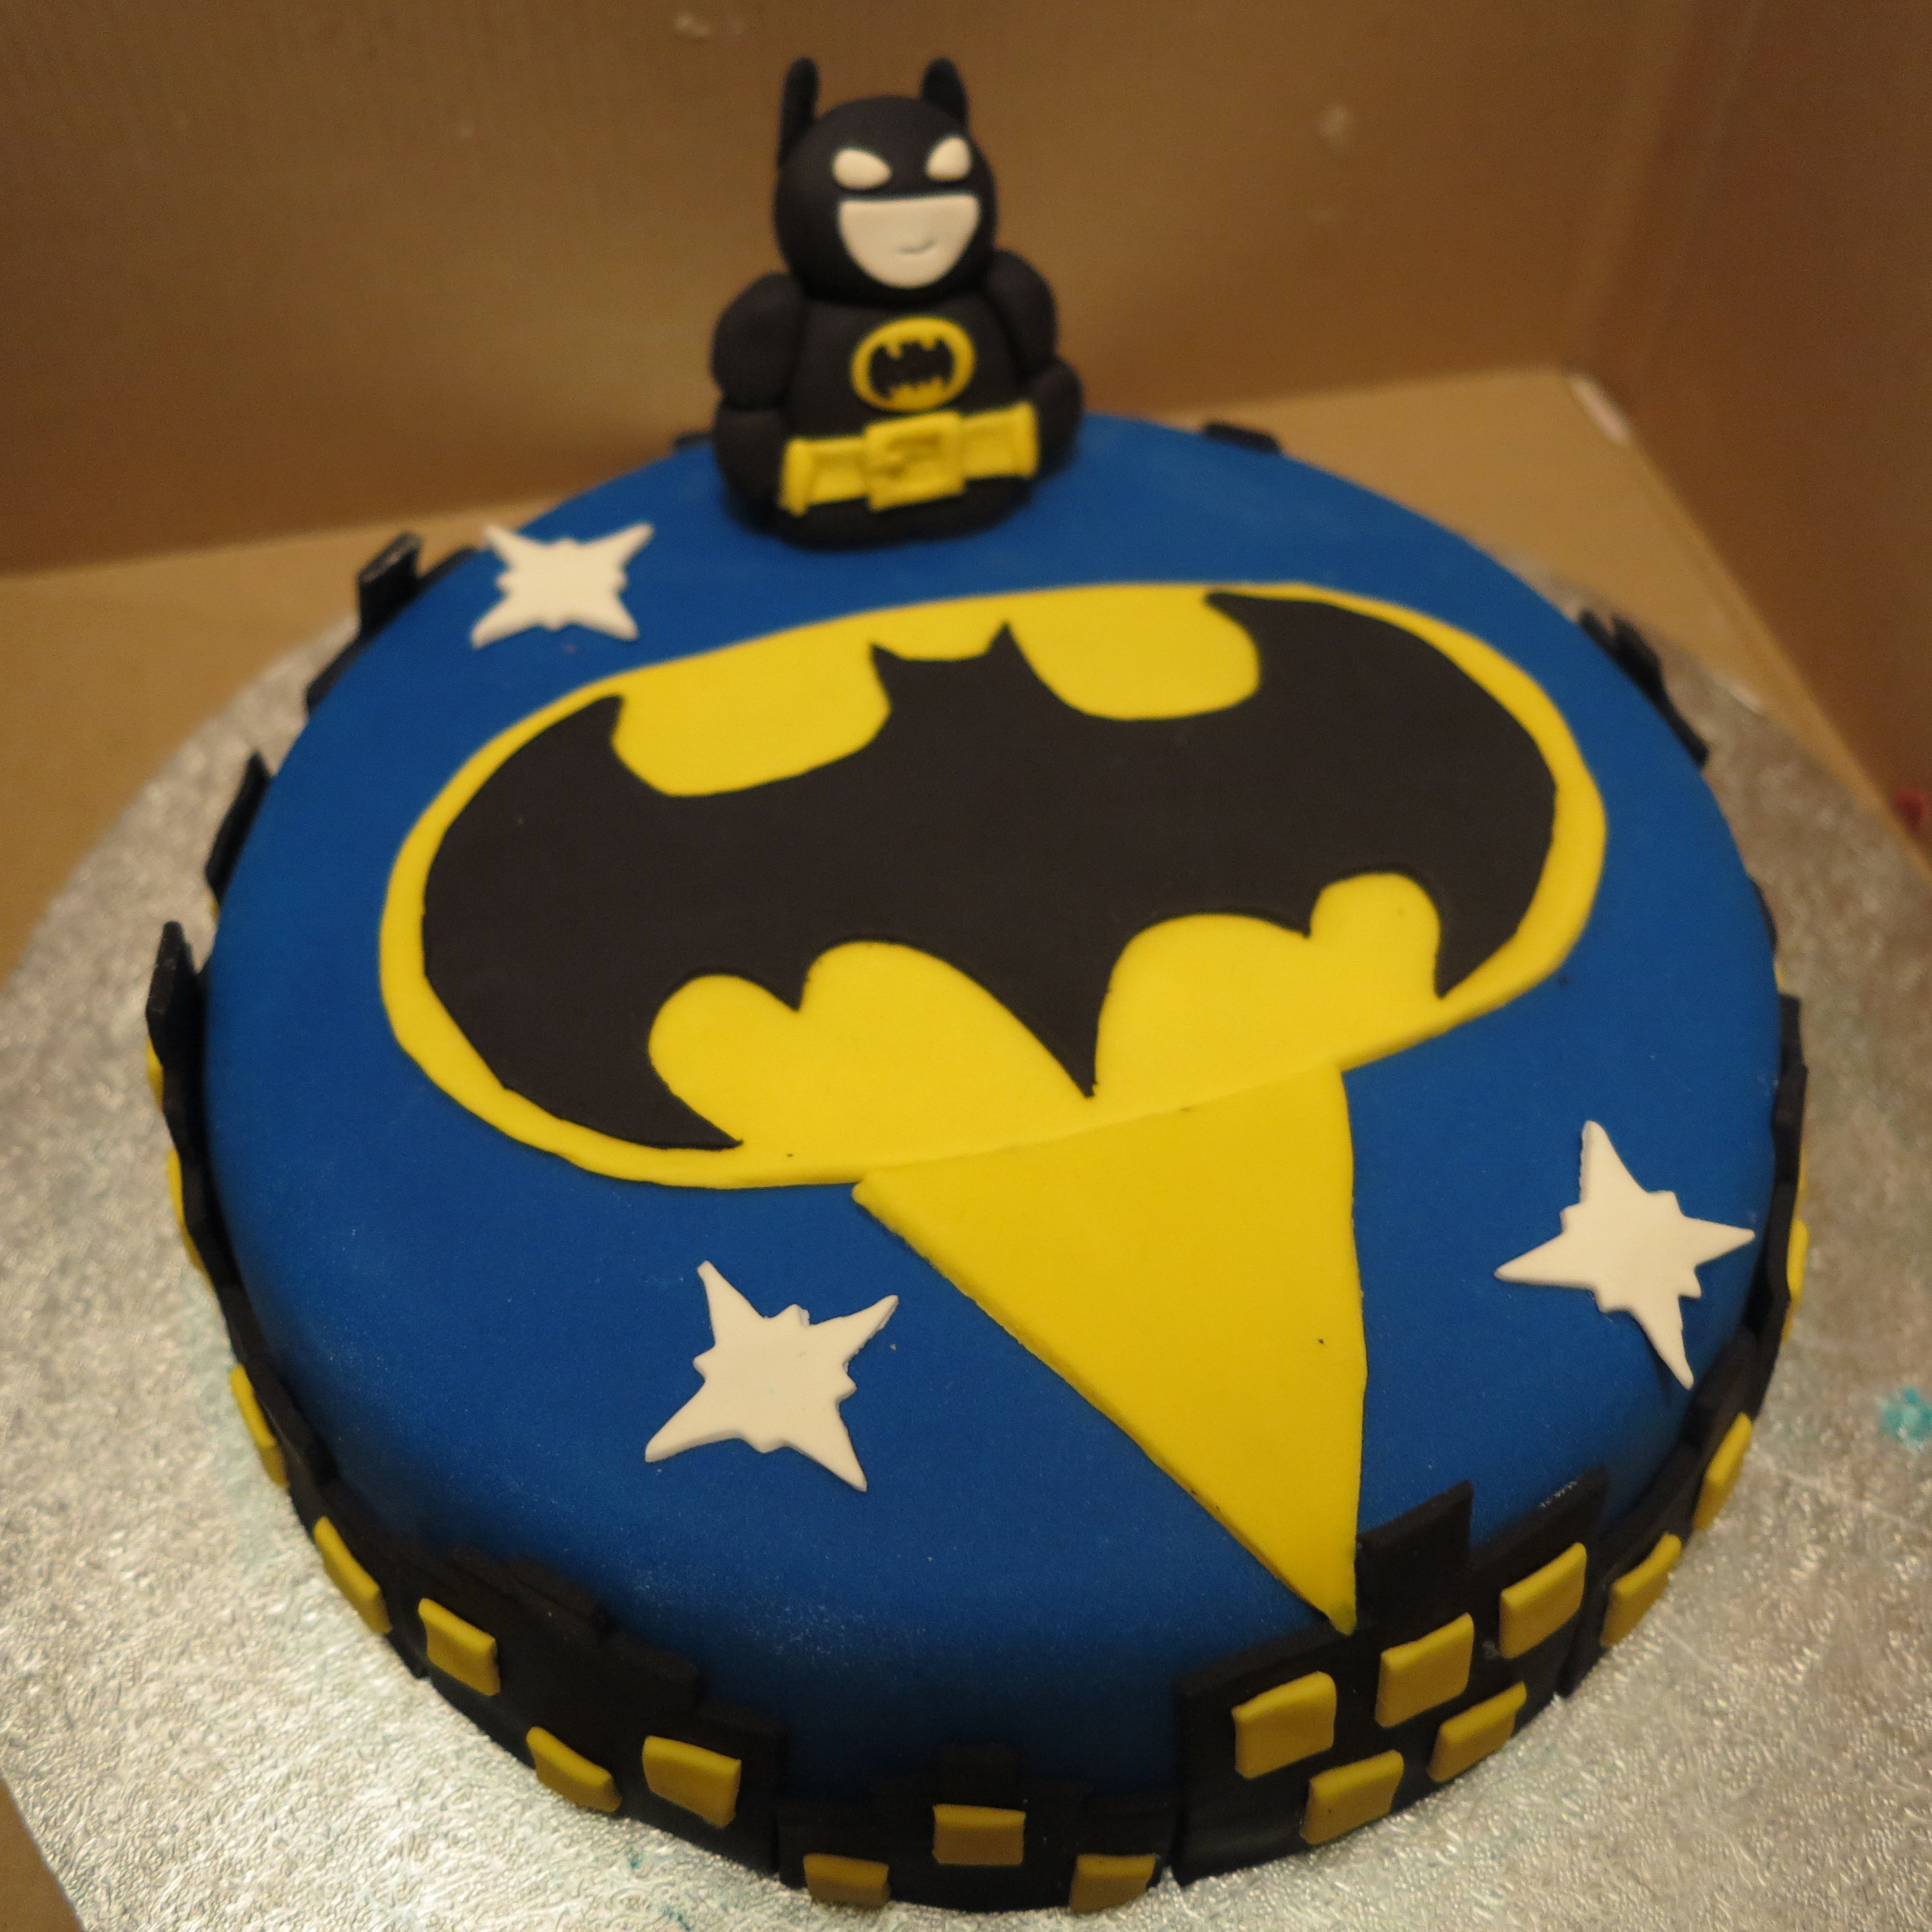 Peachy Batman Cakes Decoration Ideas Little Birthday Cakes Funny Birthday Cards Online Elaedamsfinfo